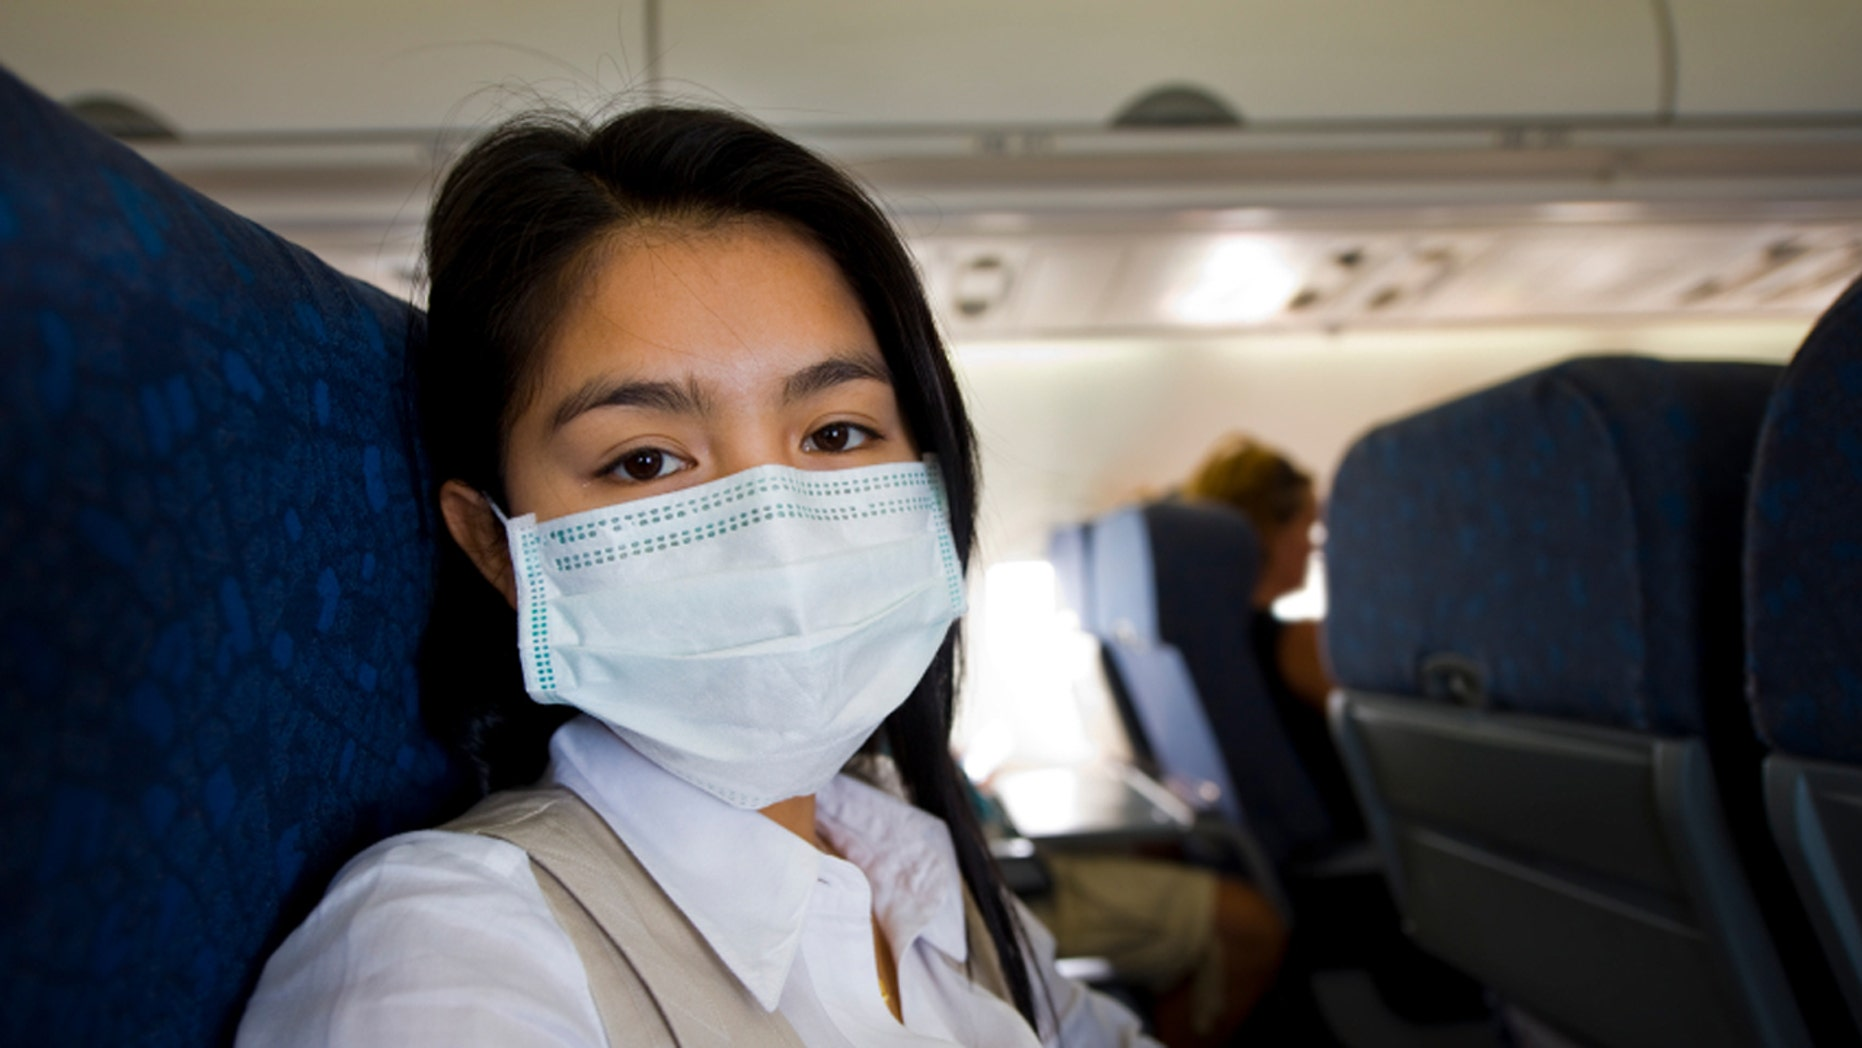 Wearing a mask may seem extreme but travelers encounter tons of germs while flying.